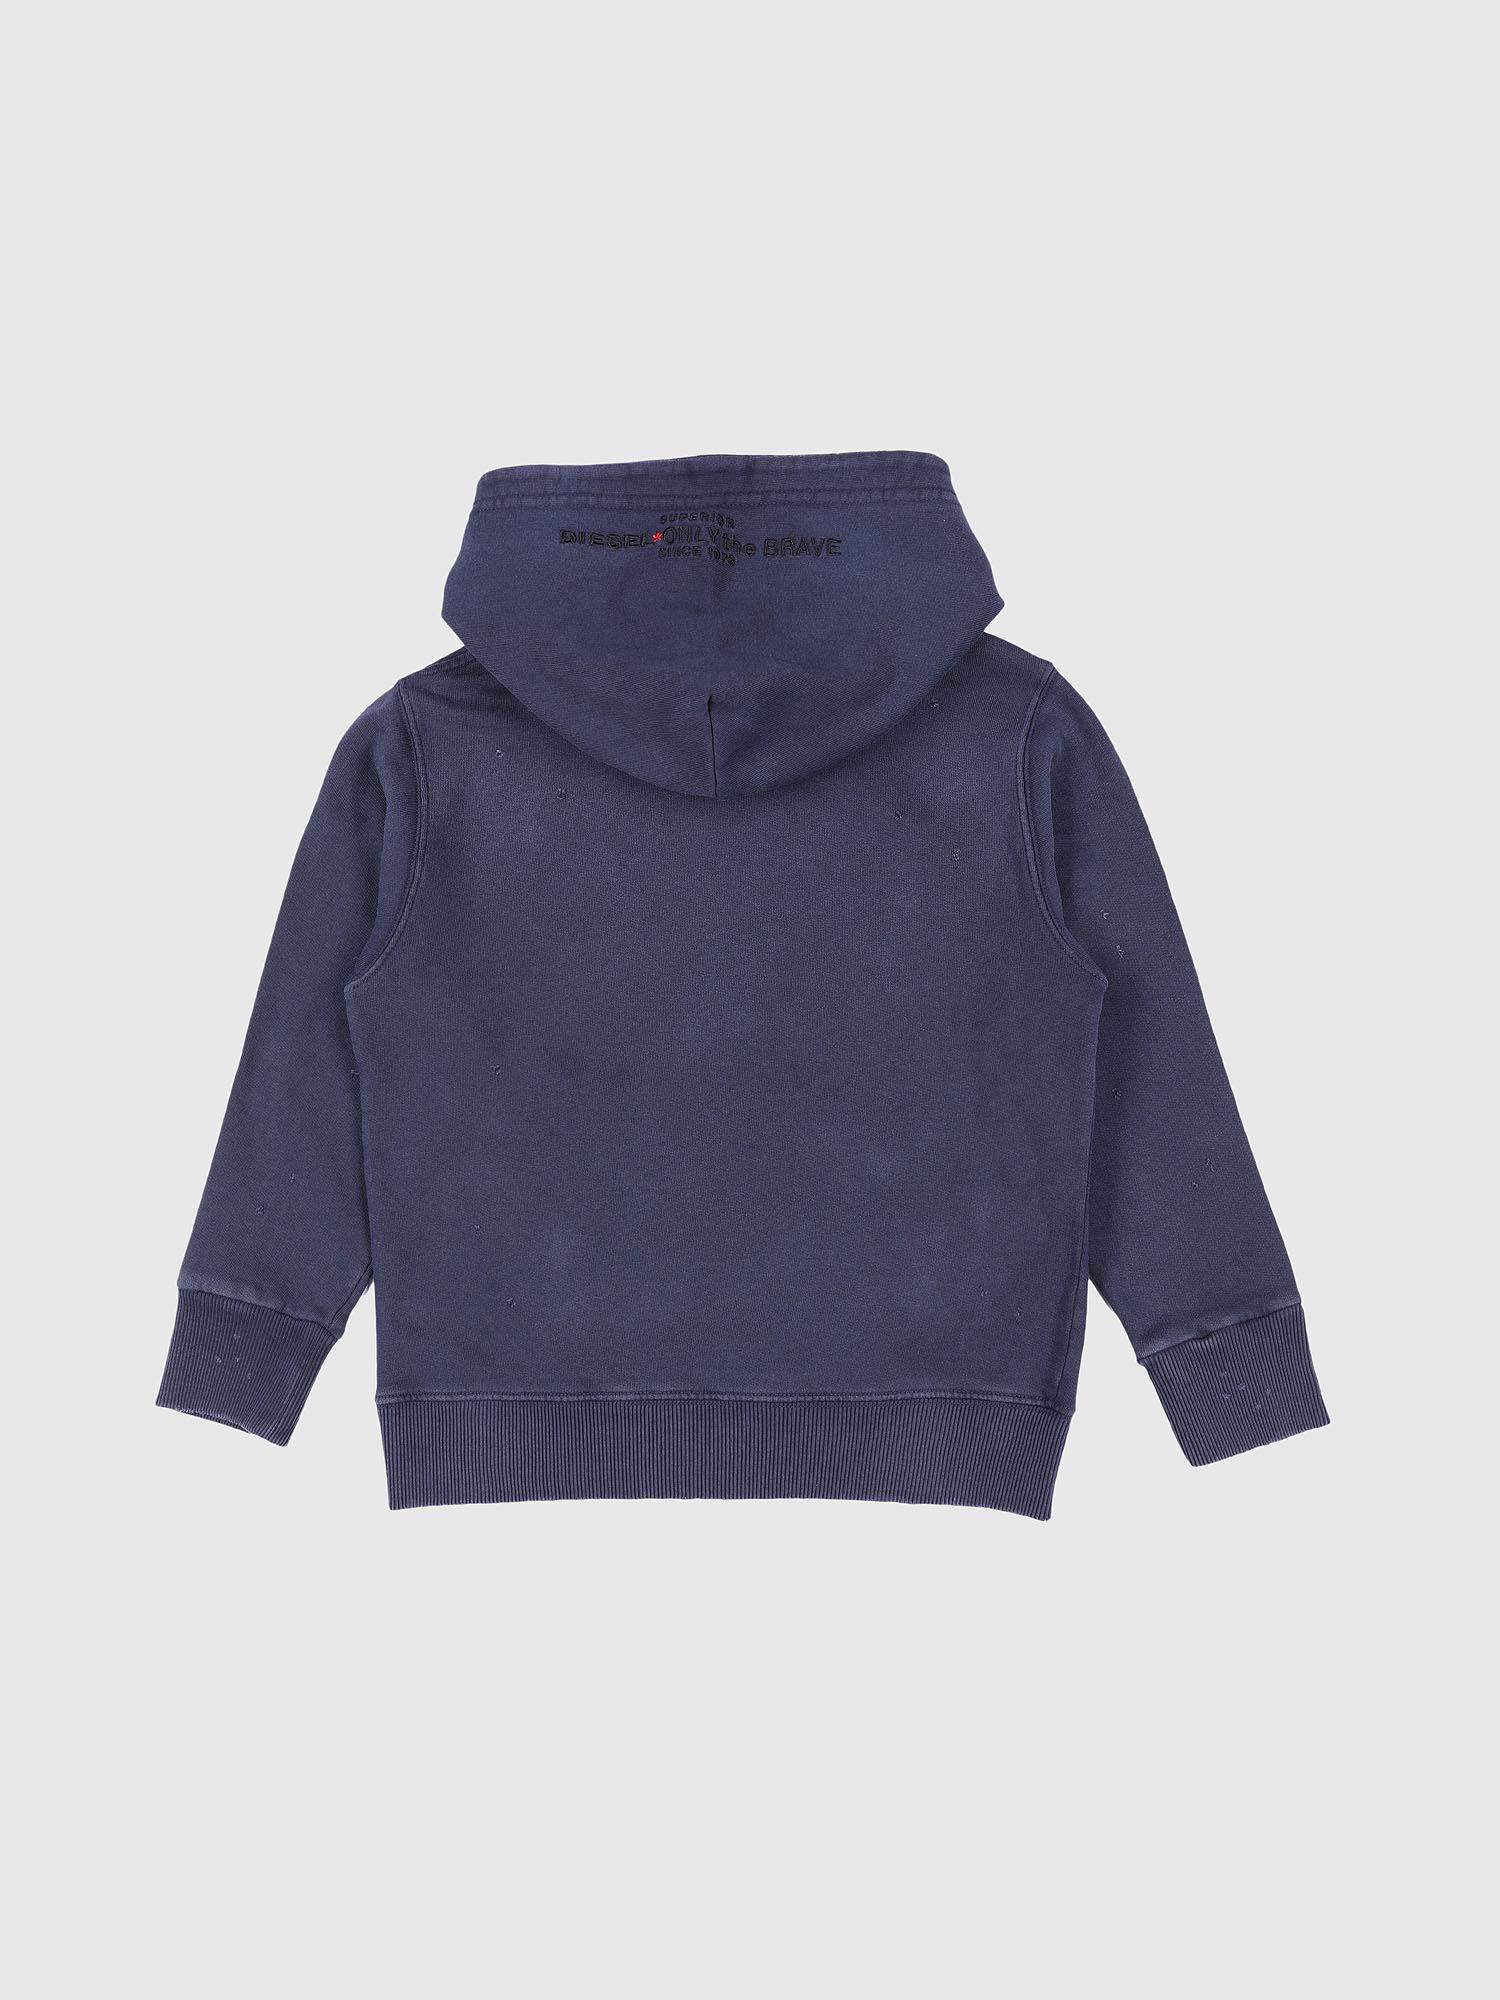 56034abff DIESEL - Blue Hooded Sweater Distressed And Faded for Men - Lyst. View  fullscreen